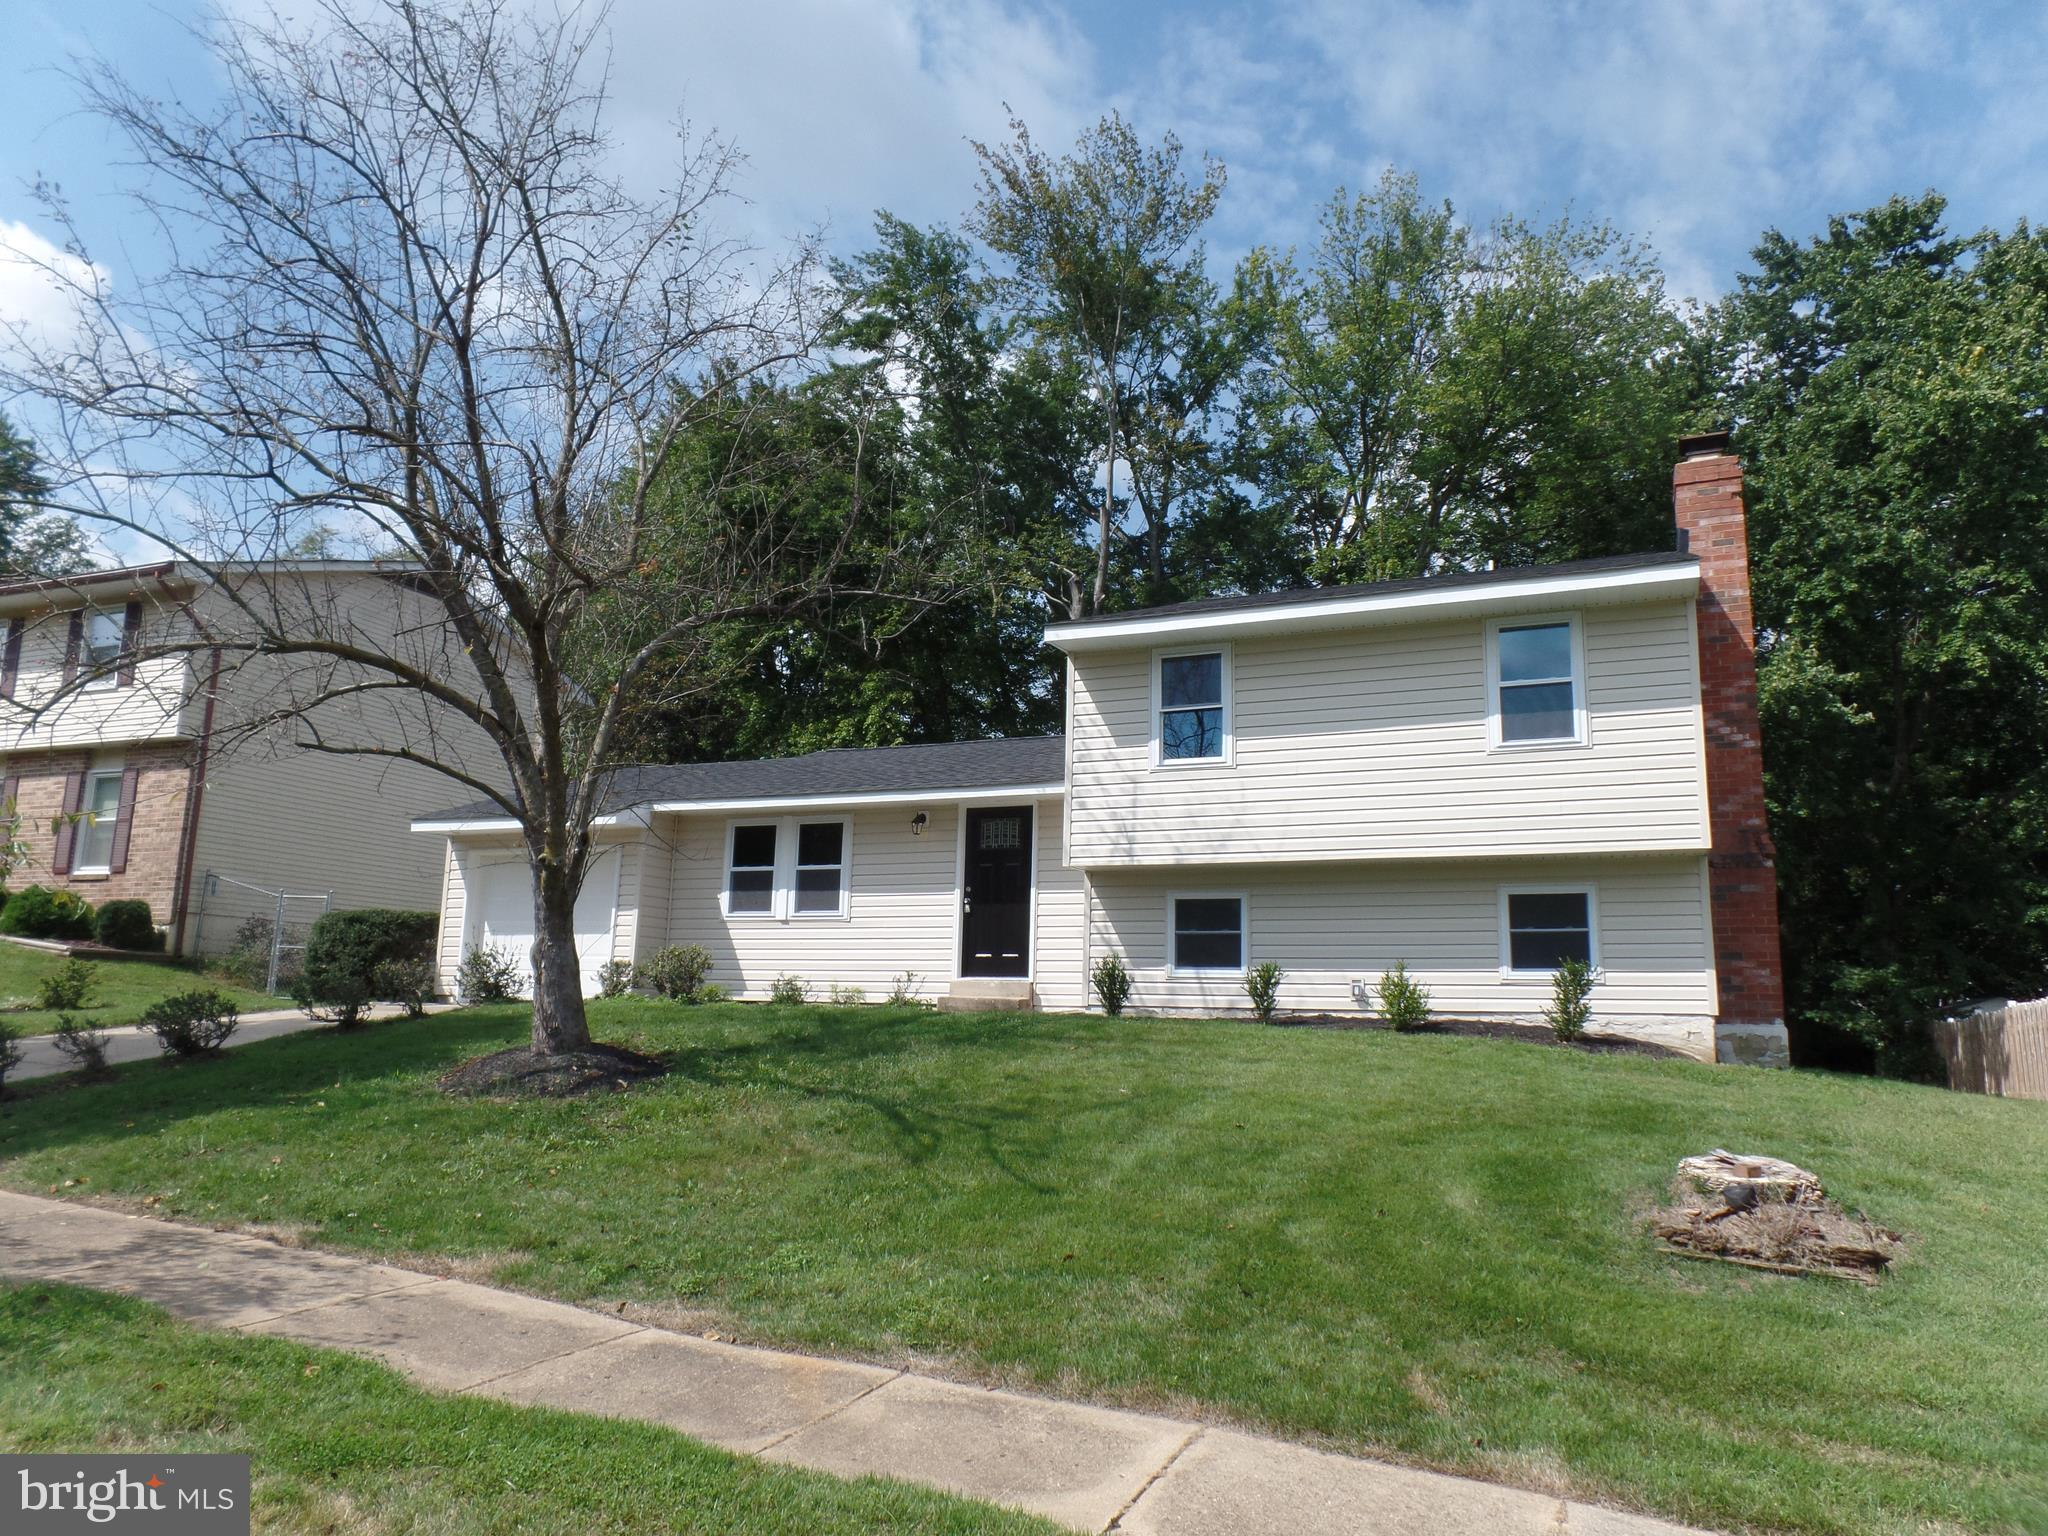 Adorable 1 car garage split level featuring 3 BR and 2.5 baths.  This home has been fully remodeled